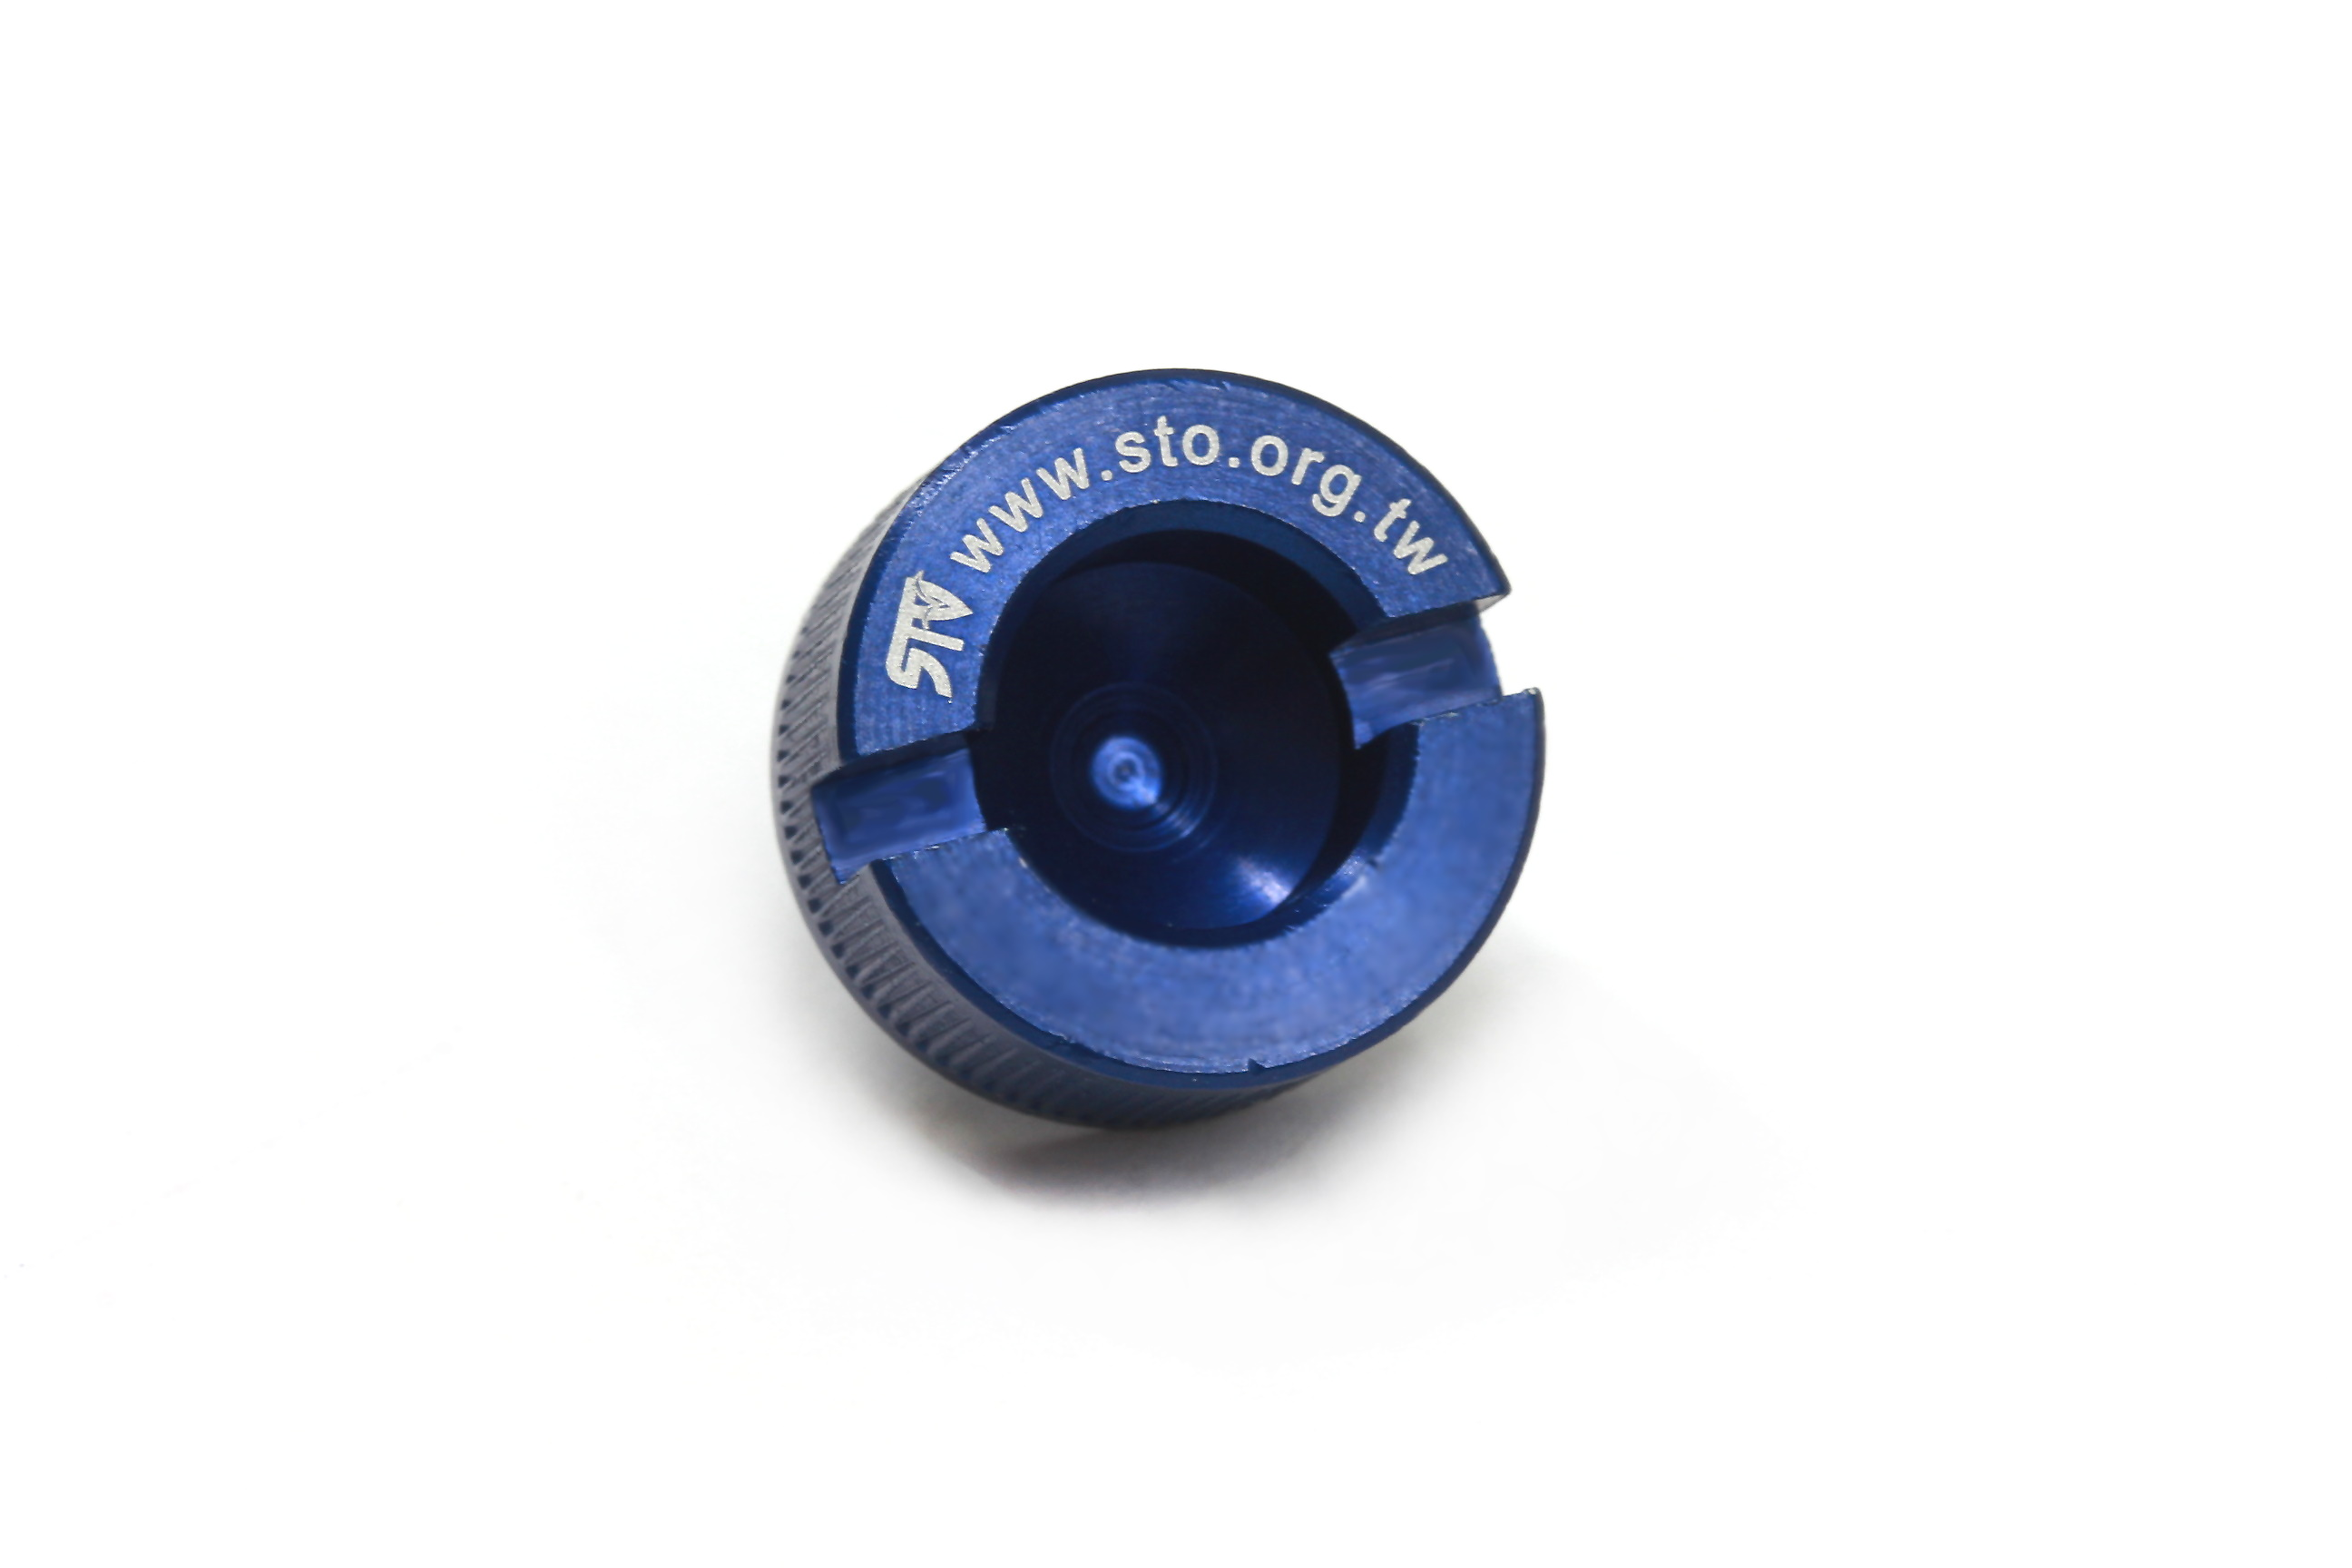 New Camera Mount Screw (Blue) 57072036